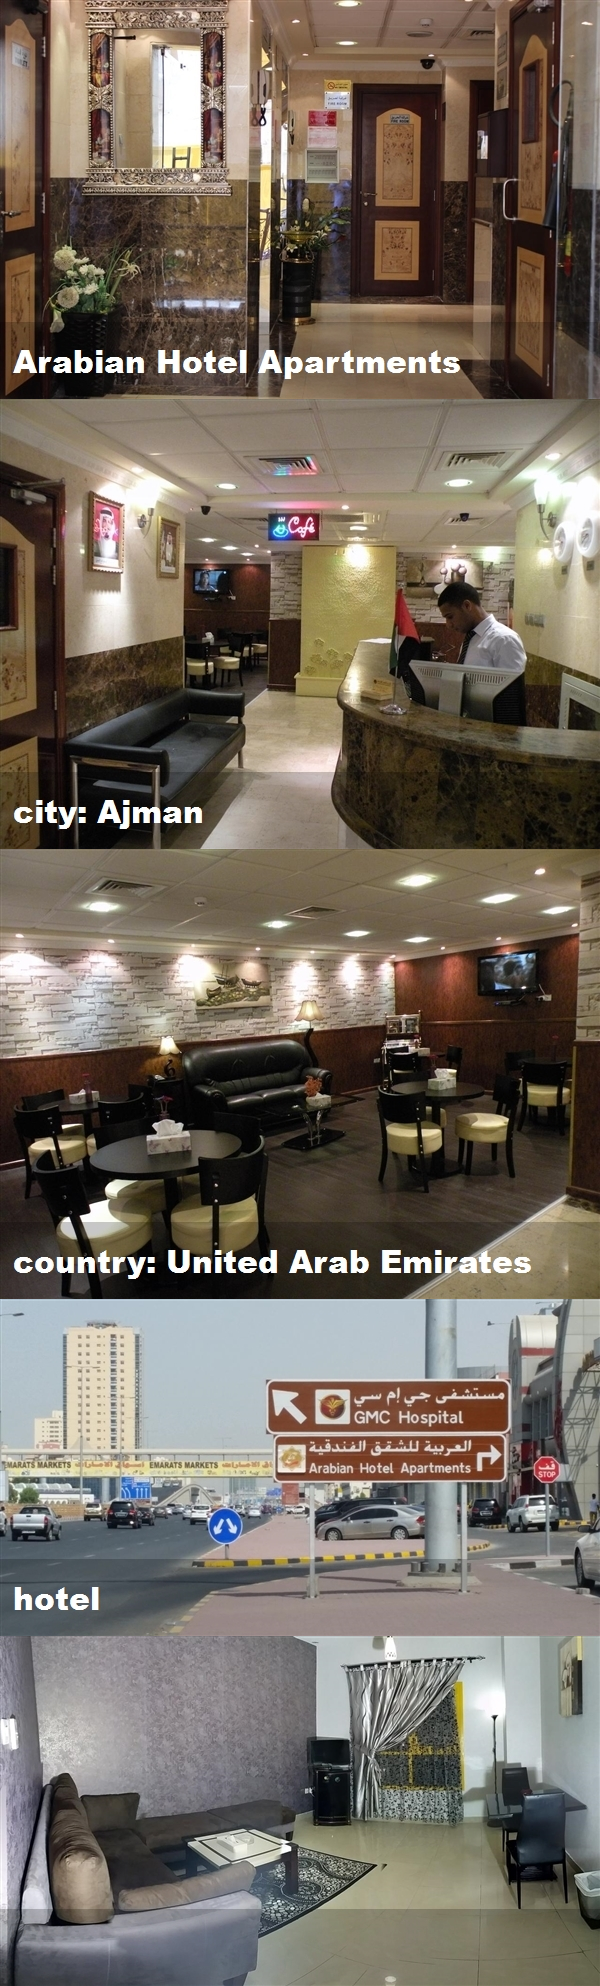 Arabian Hotel Apartments City Ajman Country United Arab